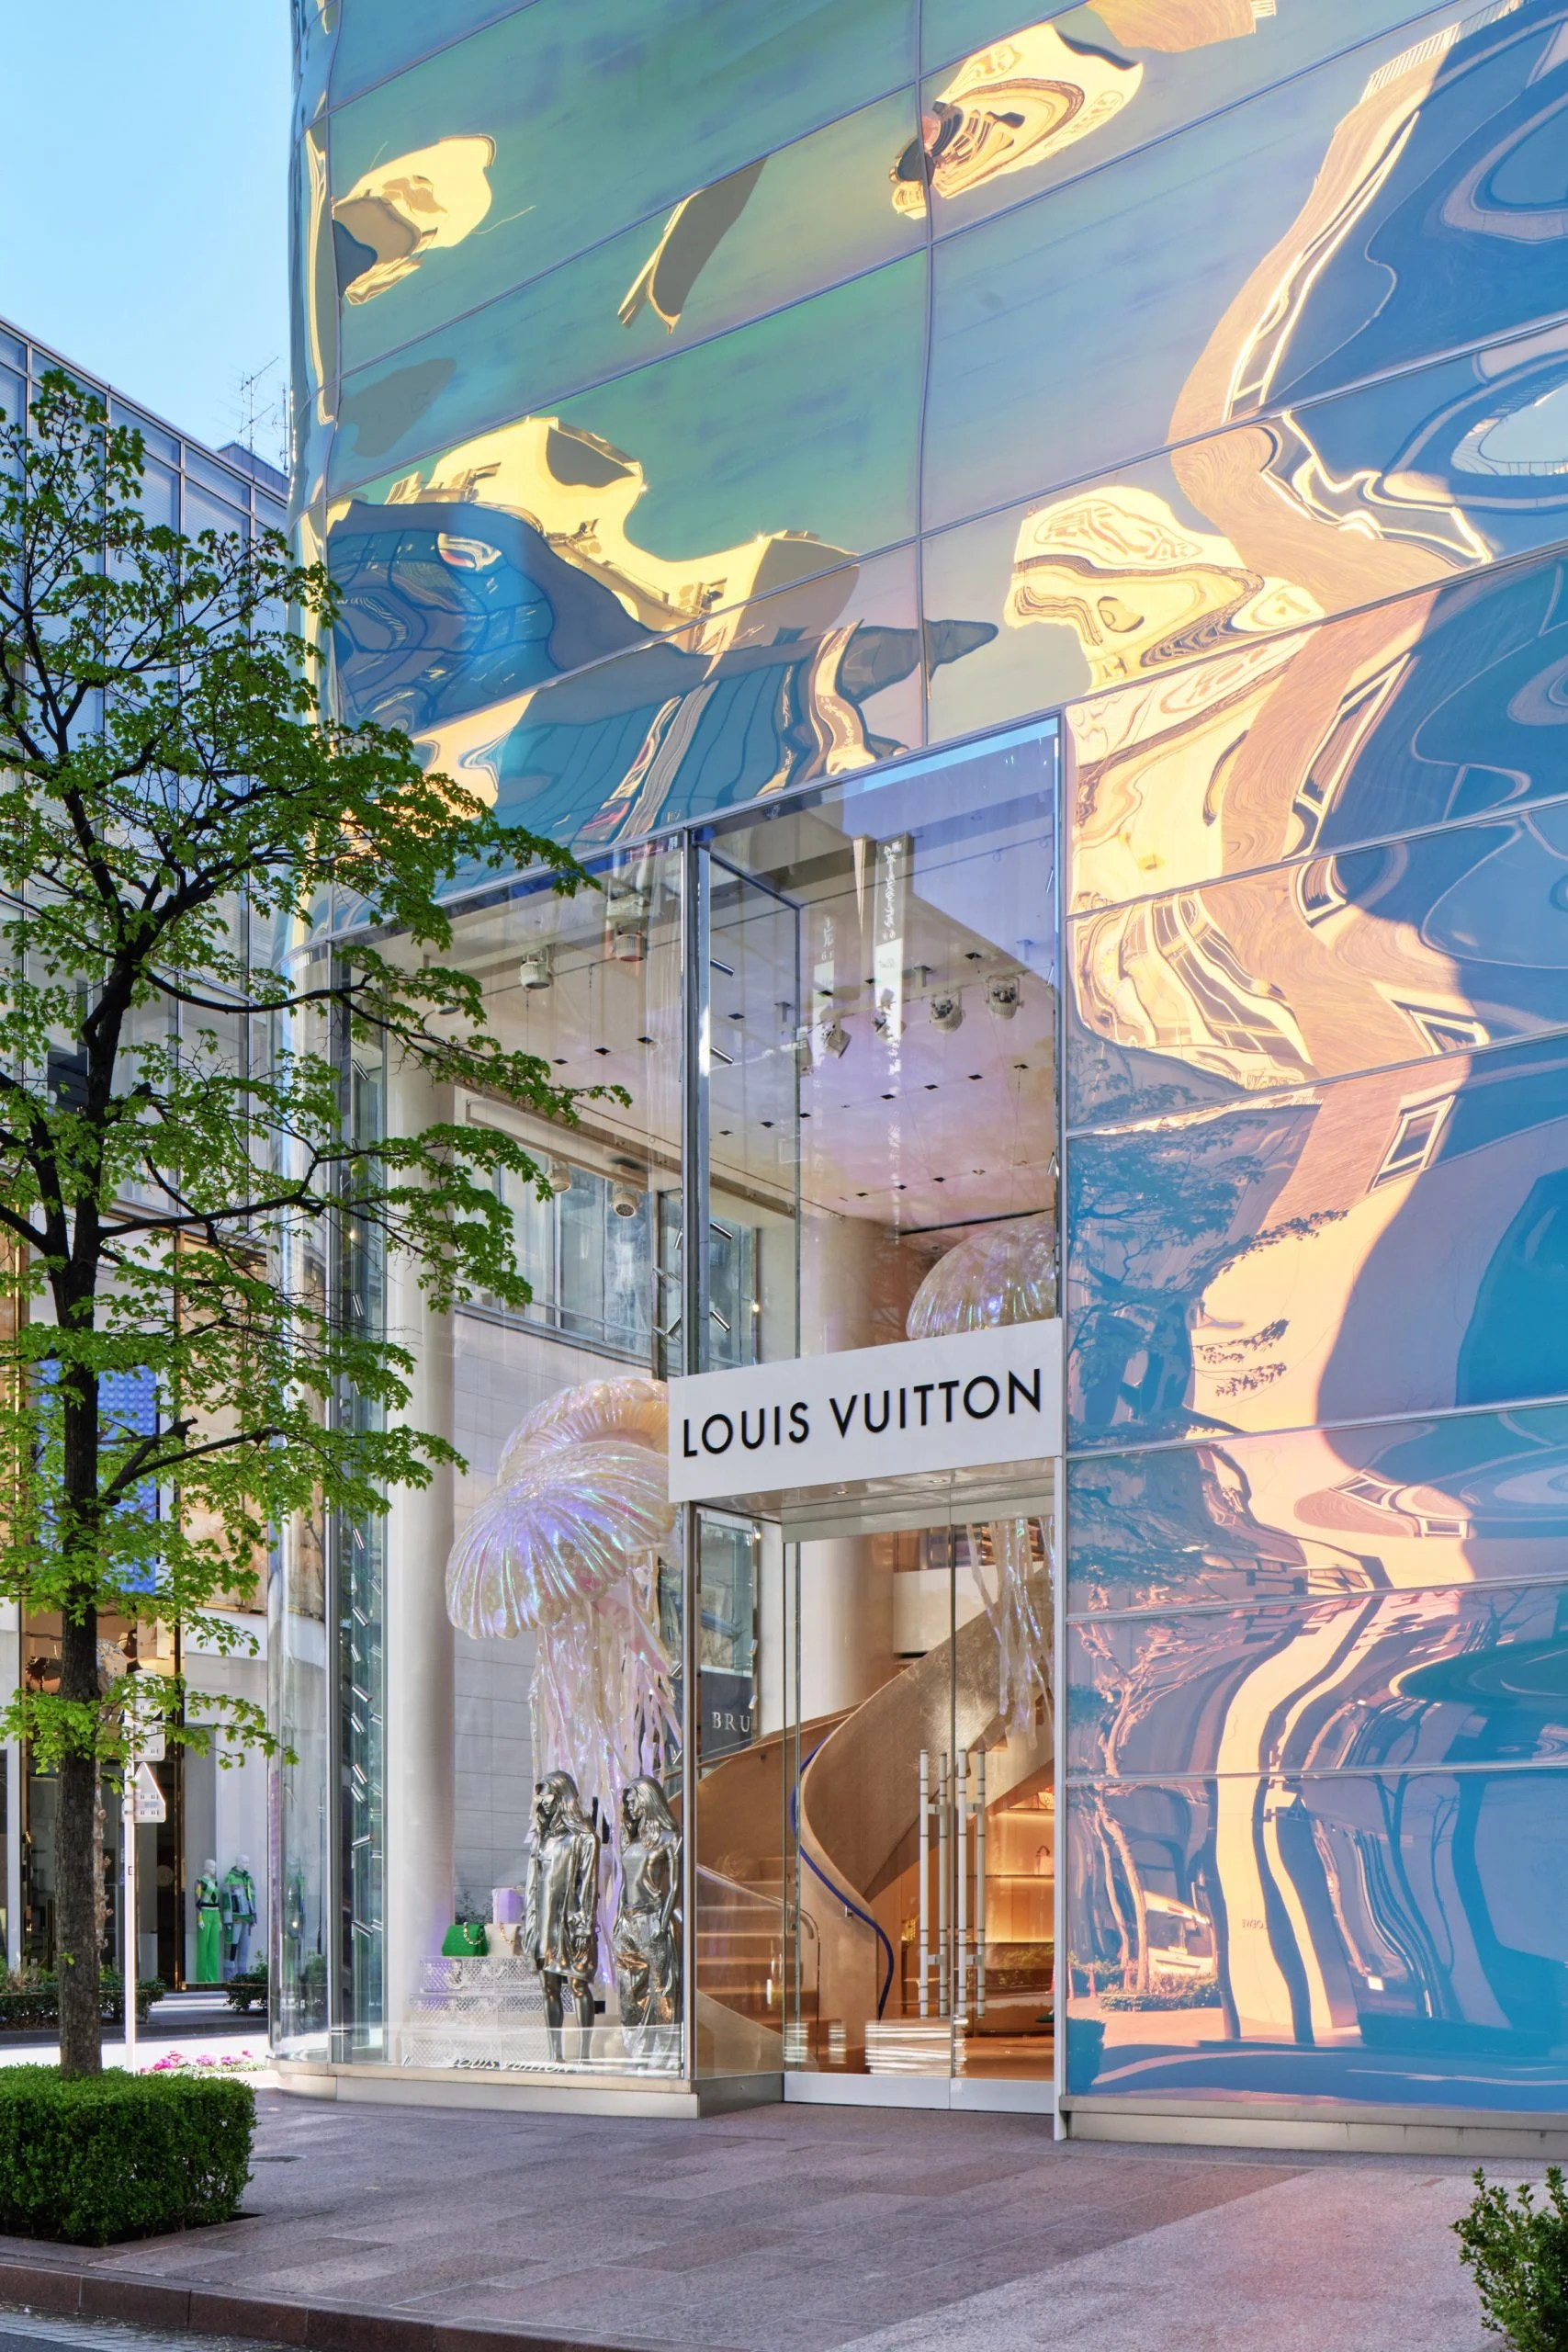 An opening in the facade marks the entrance to the Louis Vuitton store